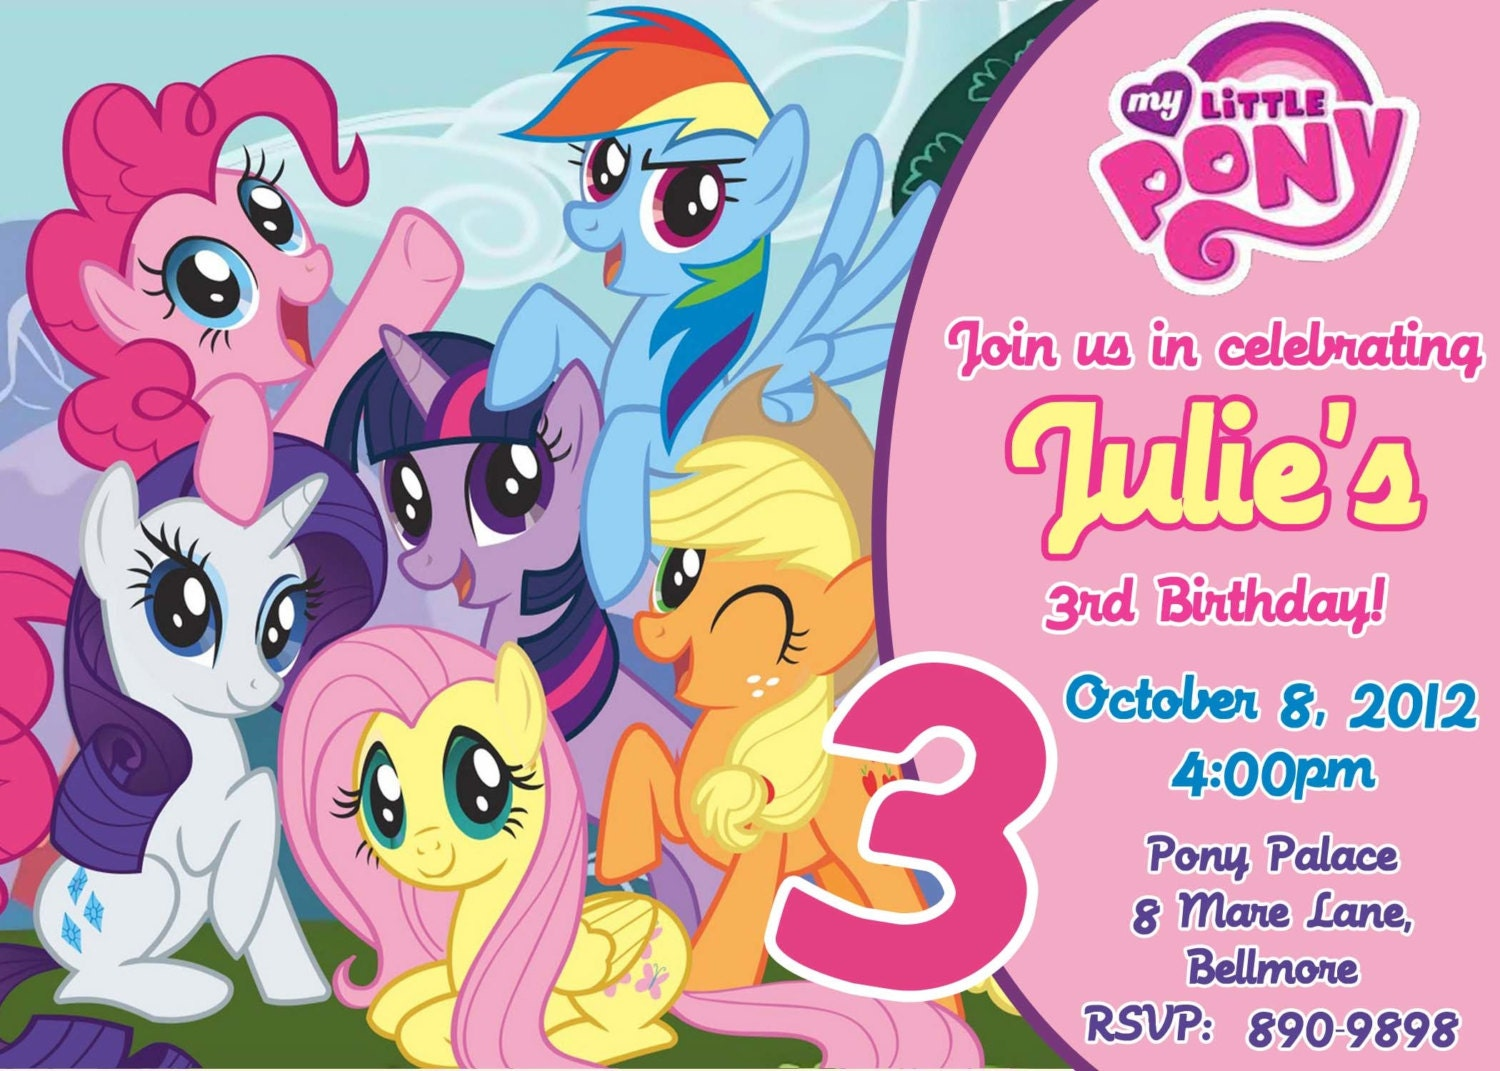 CUSTOM PHOTO Invitations My Little Pony Birthday Invitation – My Little Pony Personalized Birthday Invitations